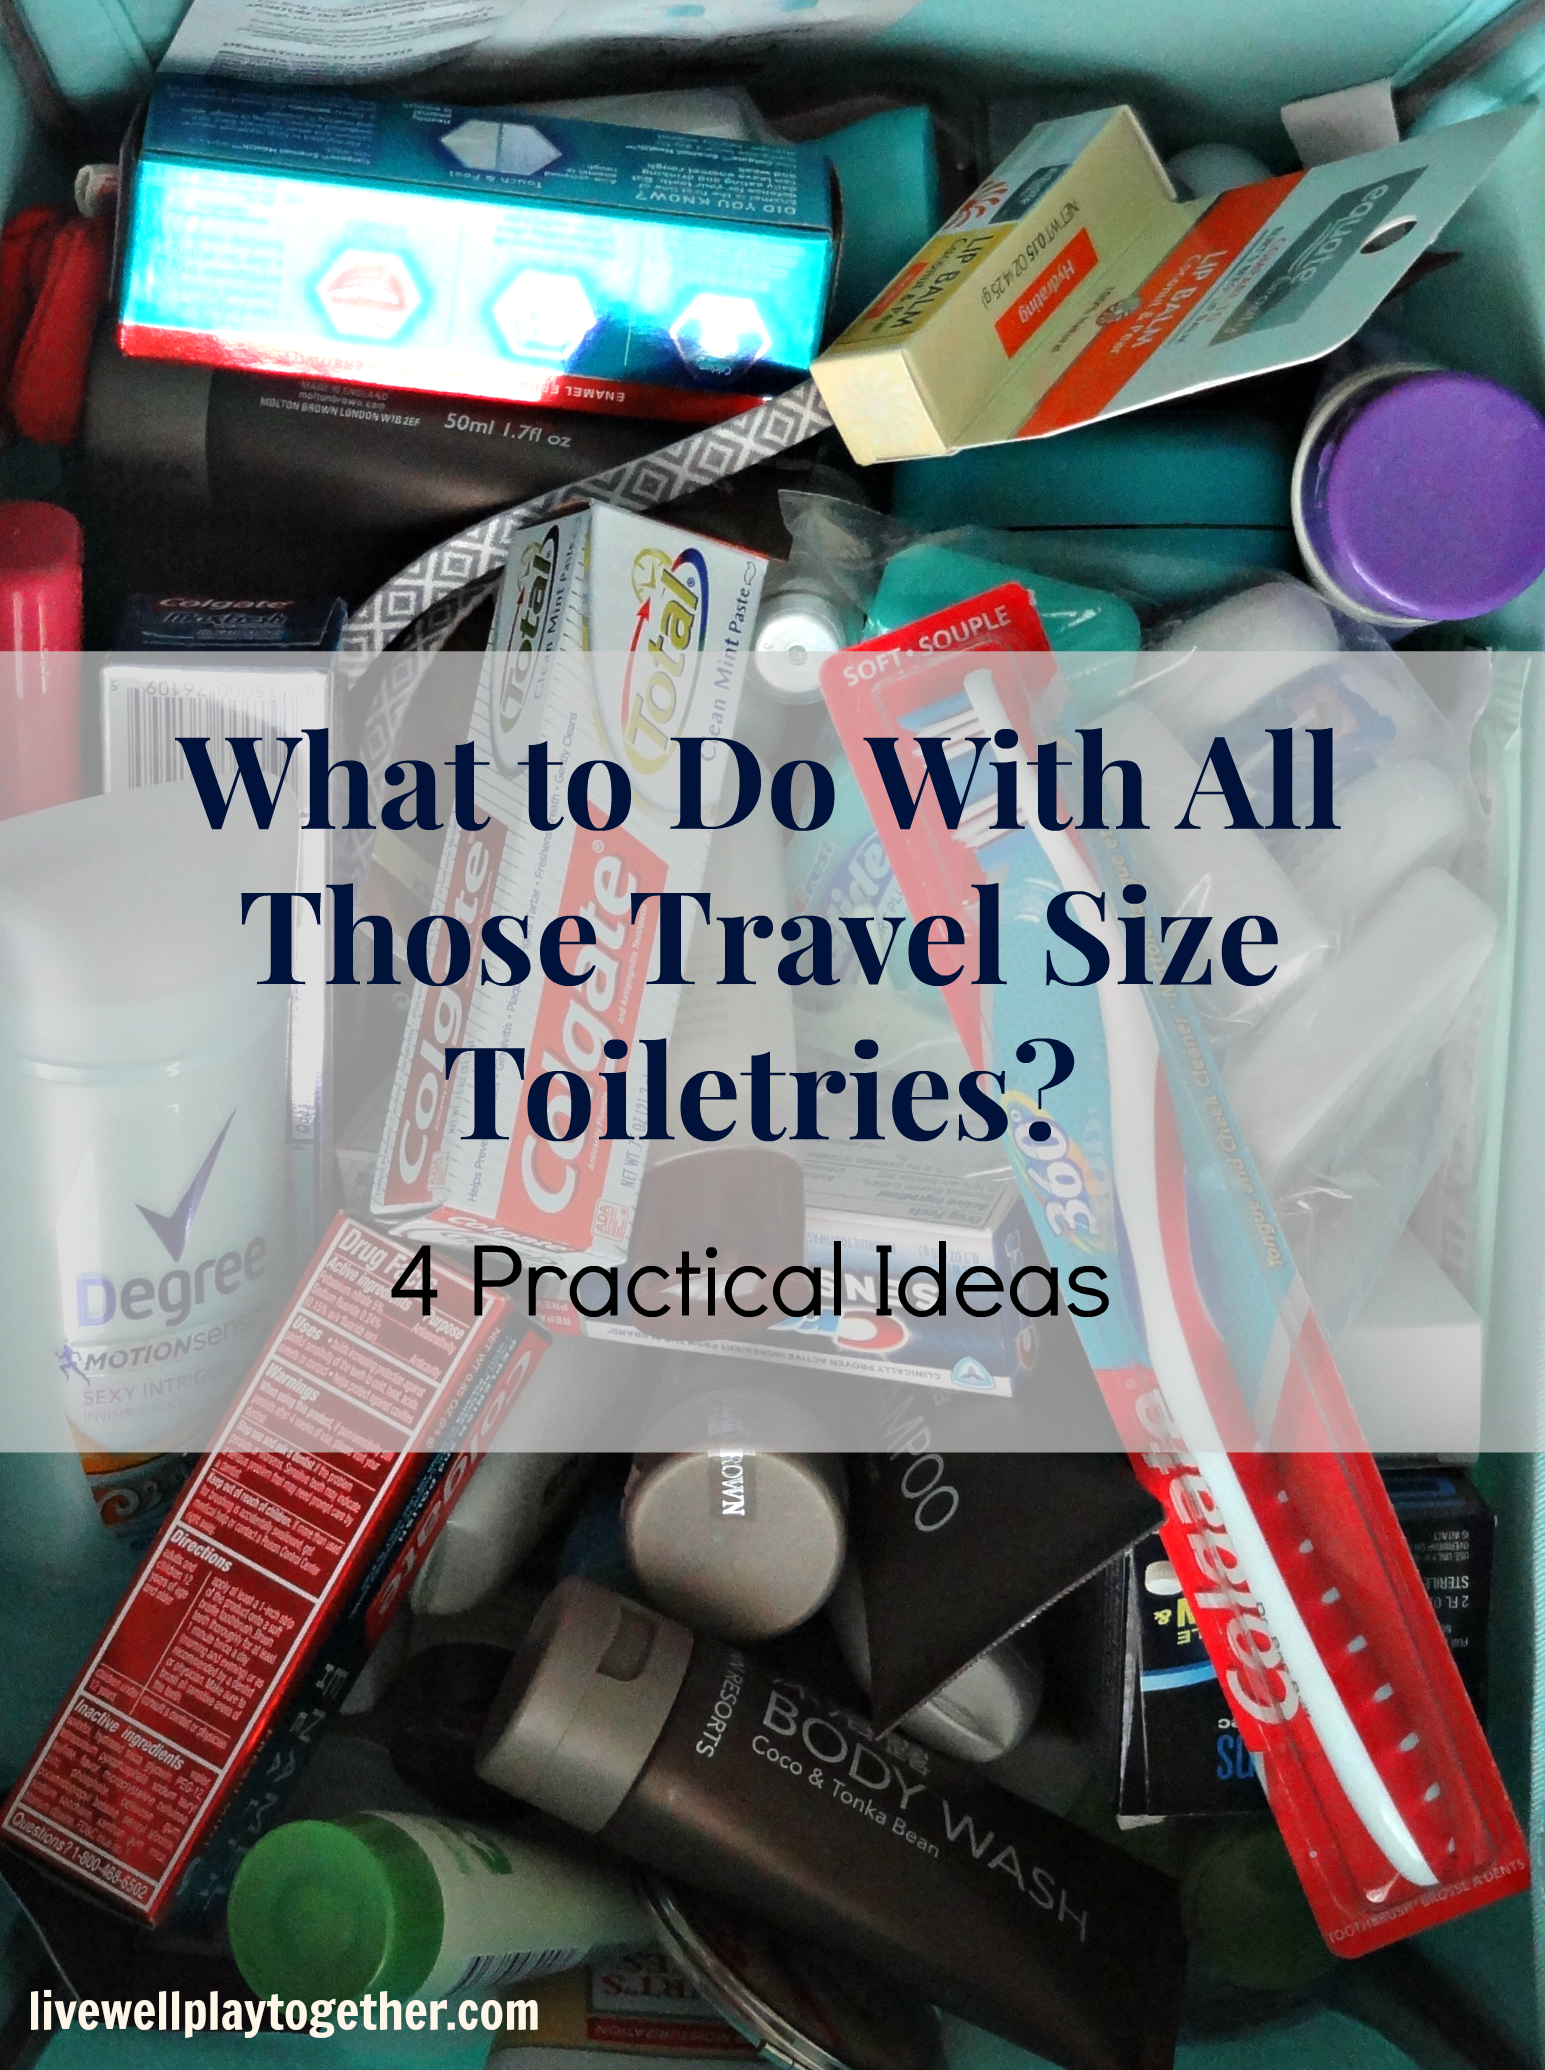 Travel Size Toiletries Travel Size Products Travel Size Toiletries Hotel Toiletries